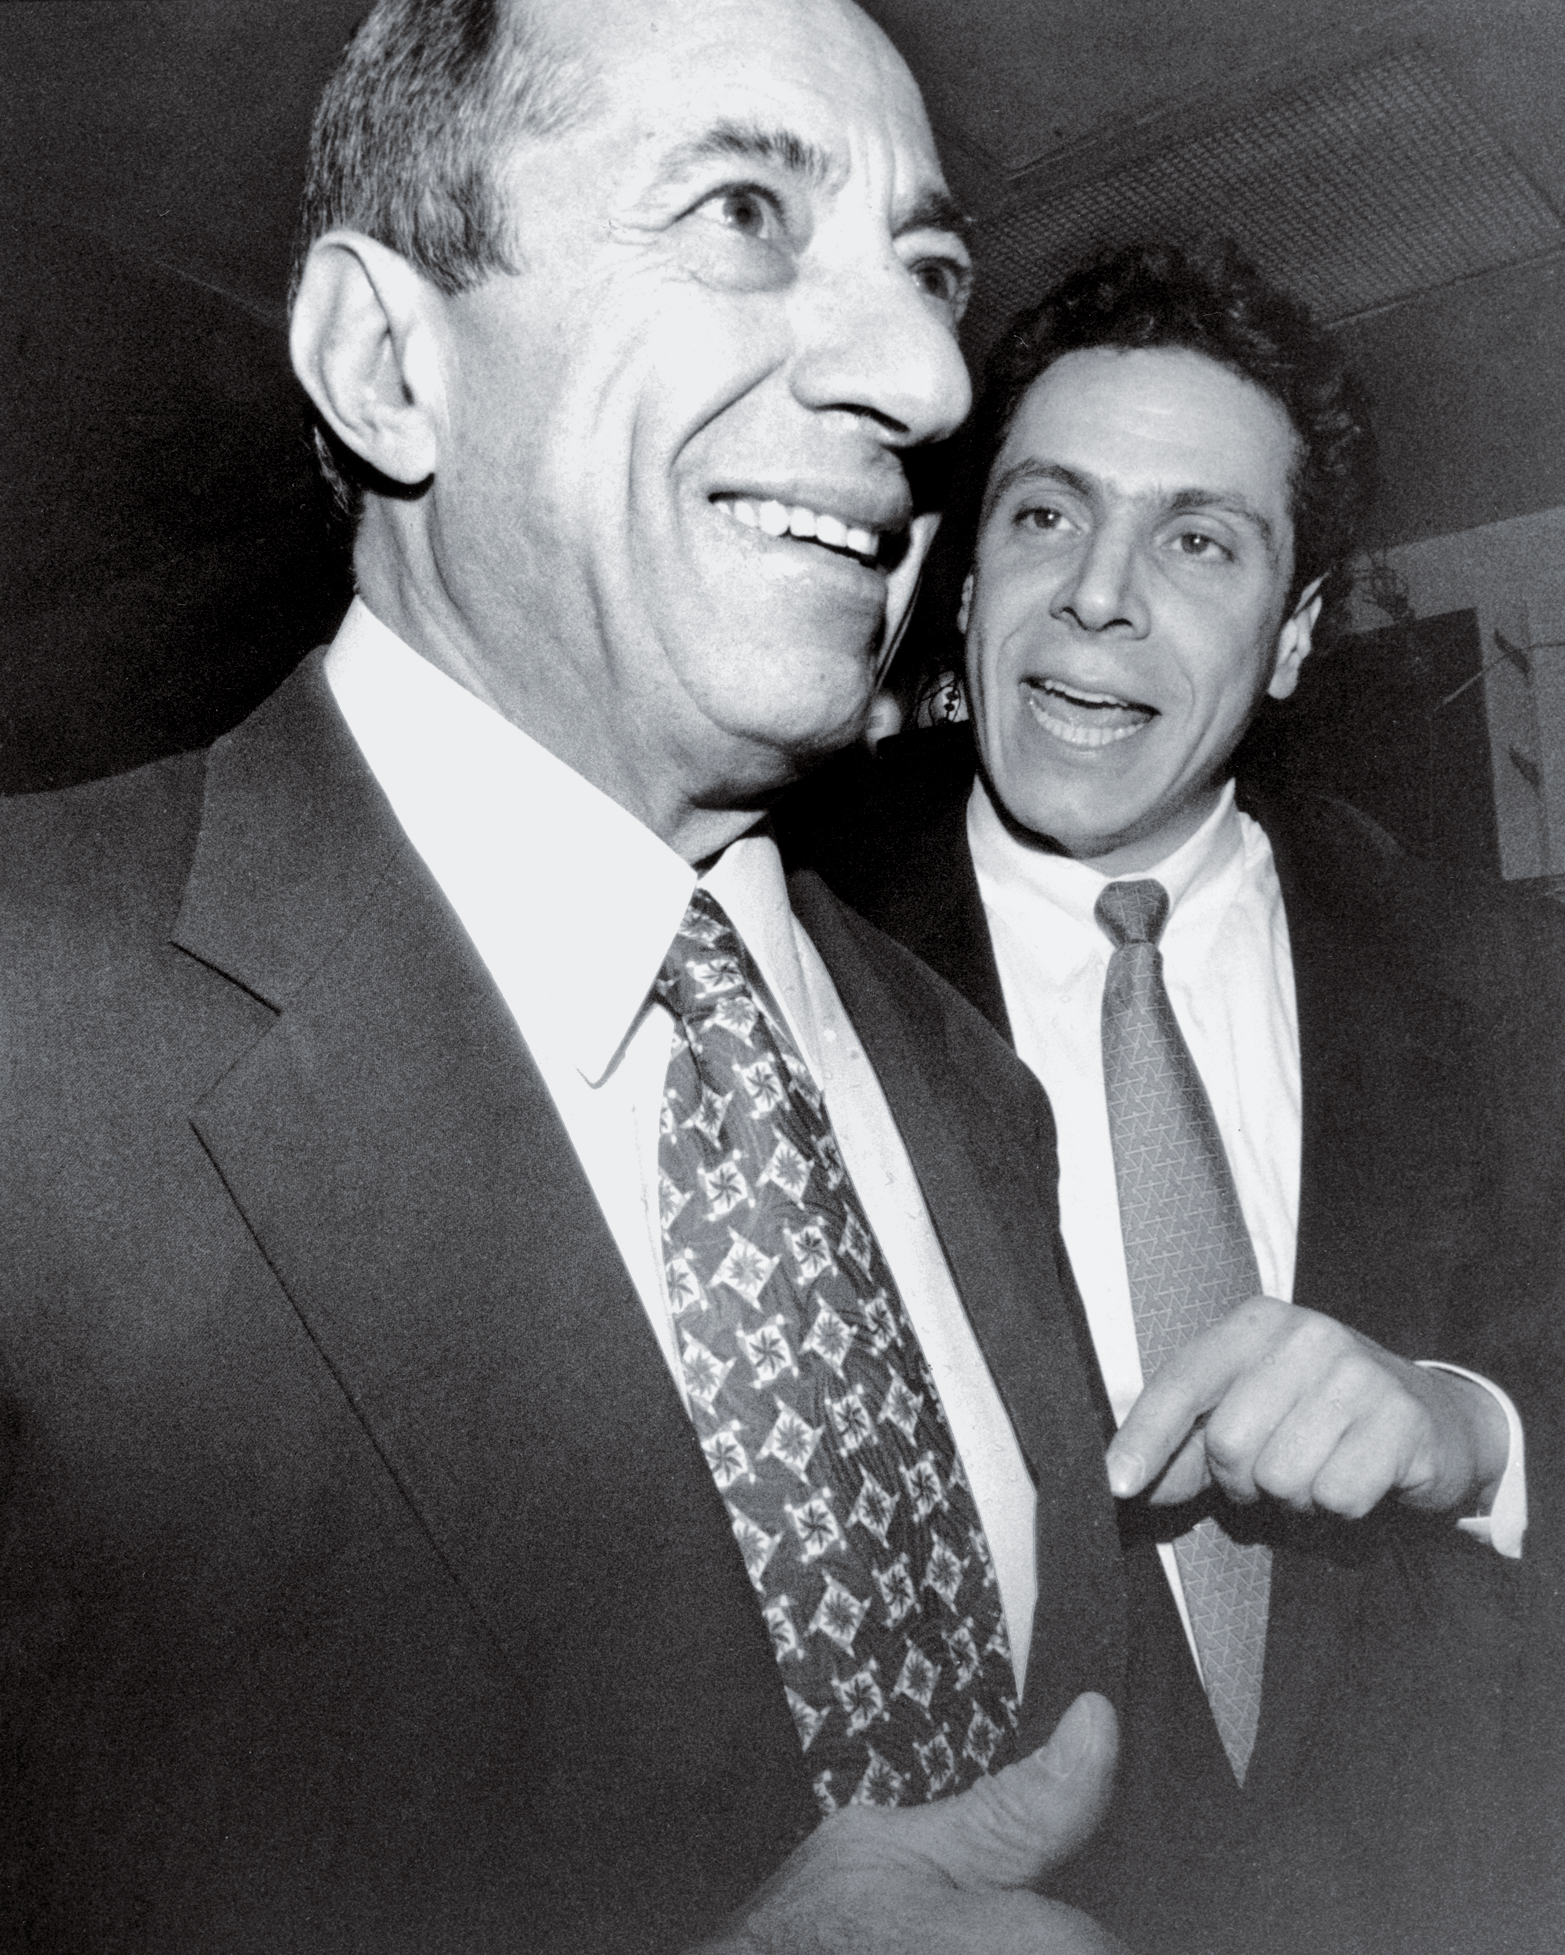 New York Governor Mario Cuomo with his son Andrew Cuomo at Andrew's birthday party at Ryan McFadden in New York City. December 19, 1994. (Photo by Luiz C. Ribeiro/New York Post Archives /(c) NYP Holdings, Inc. via Getty Images)